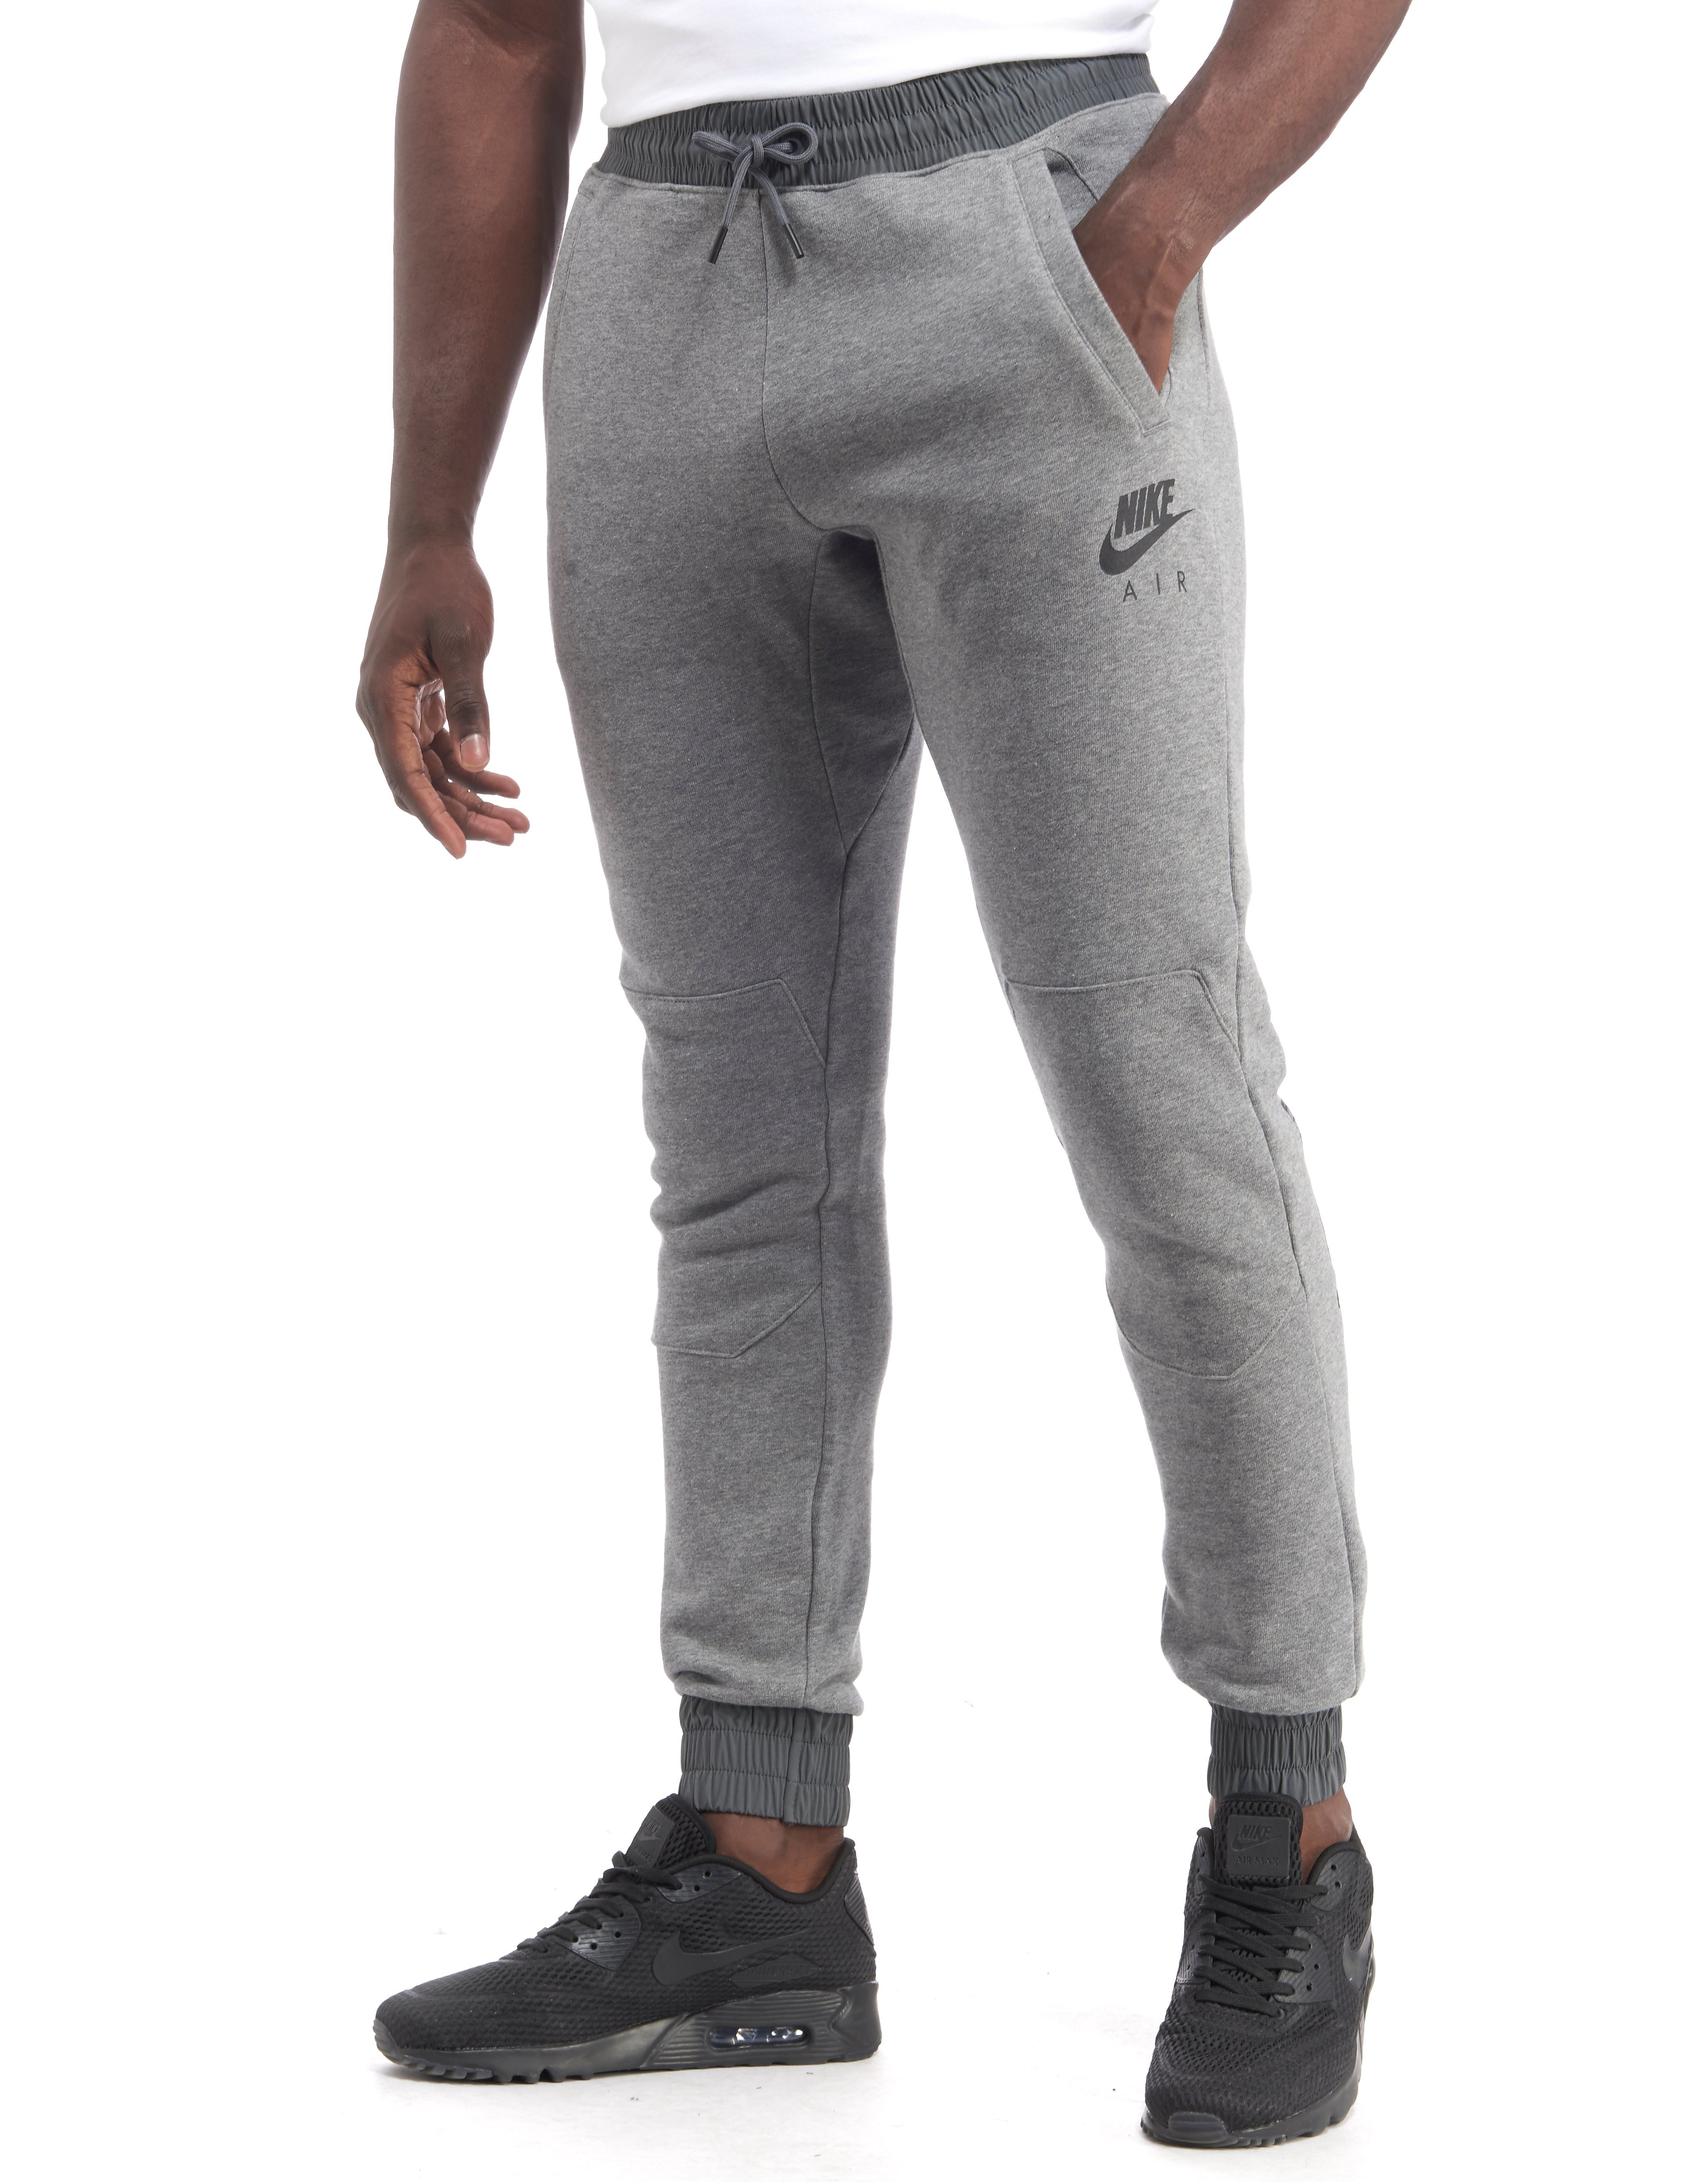 Nike Hybrid Fleece Pants